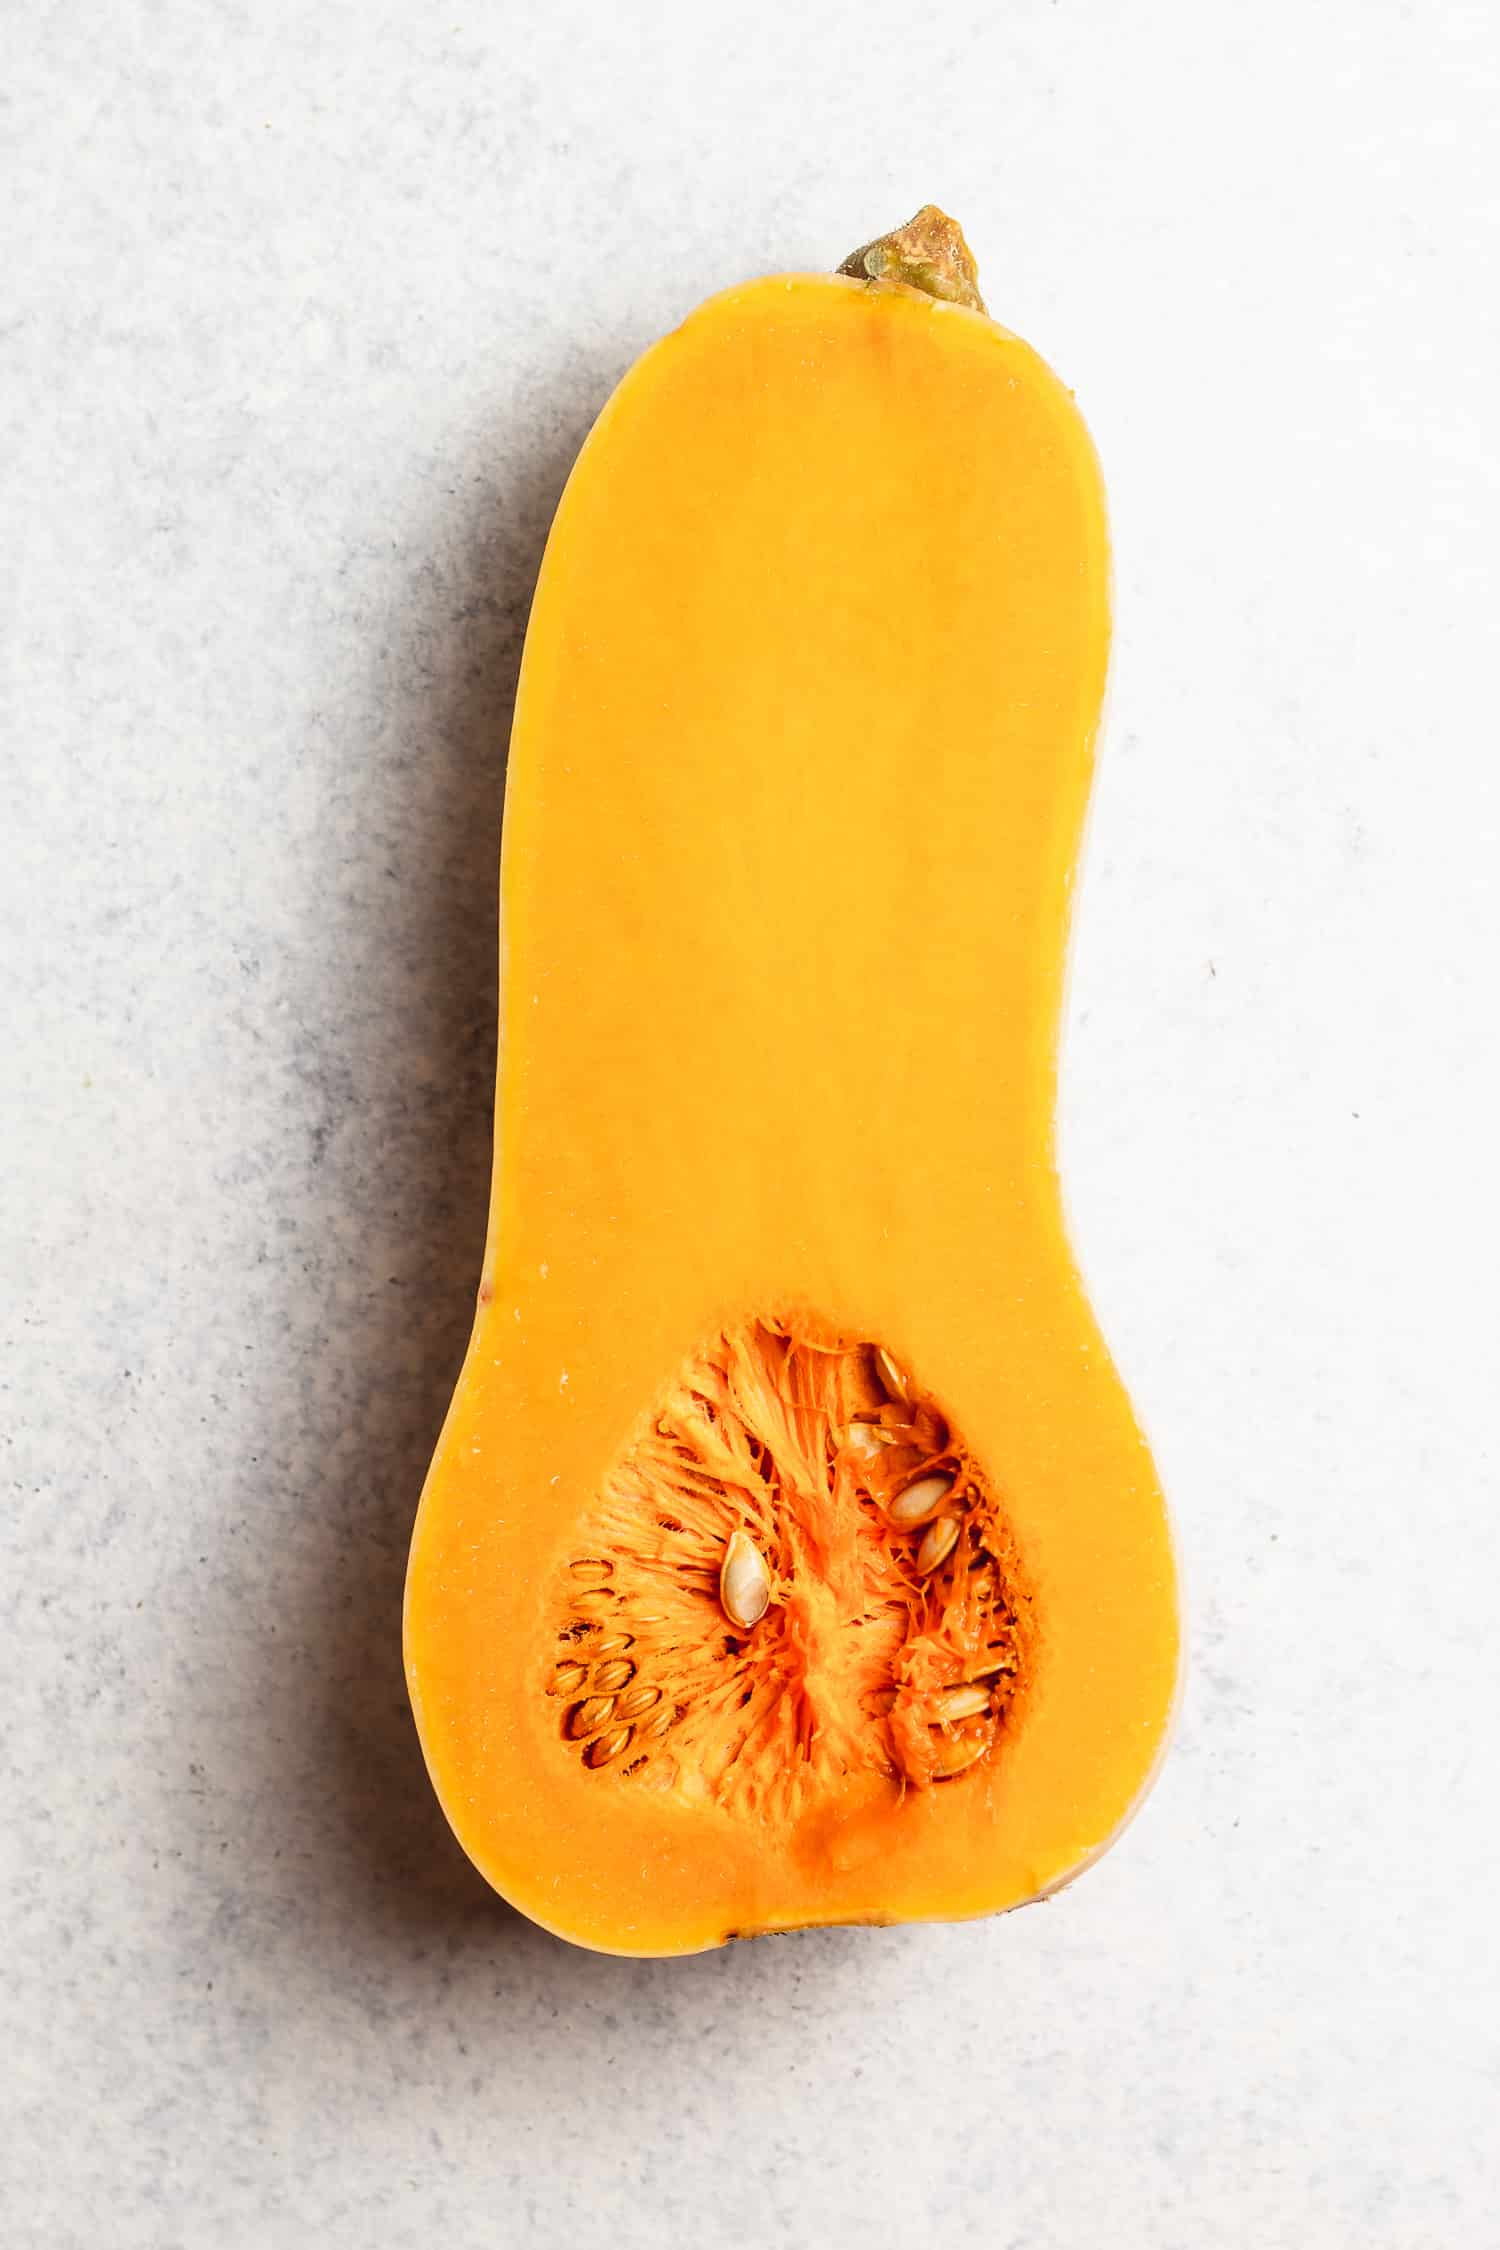 half a butternut squash, uncooked